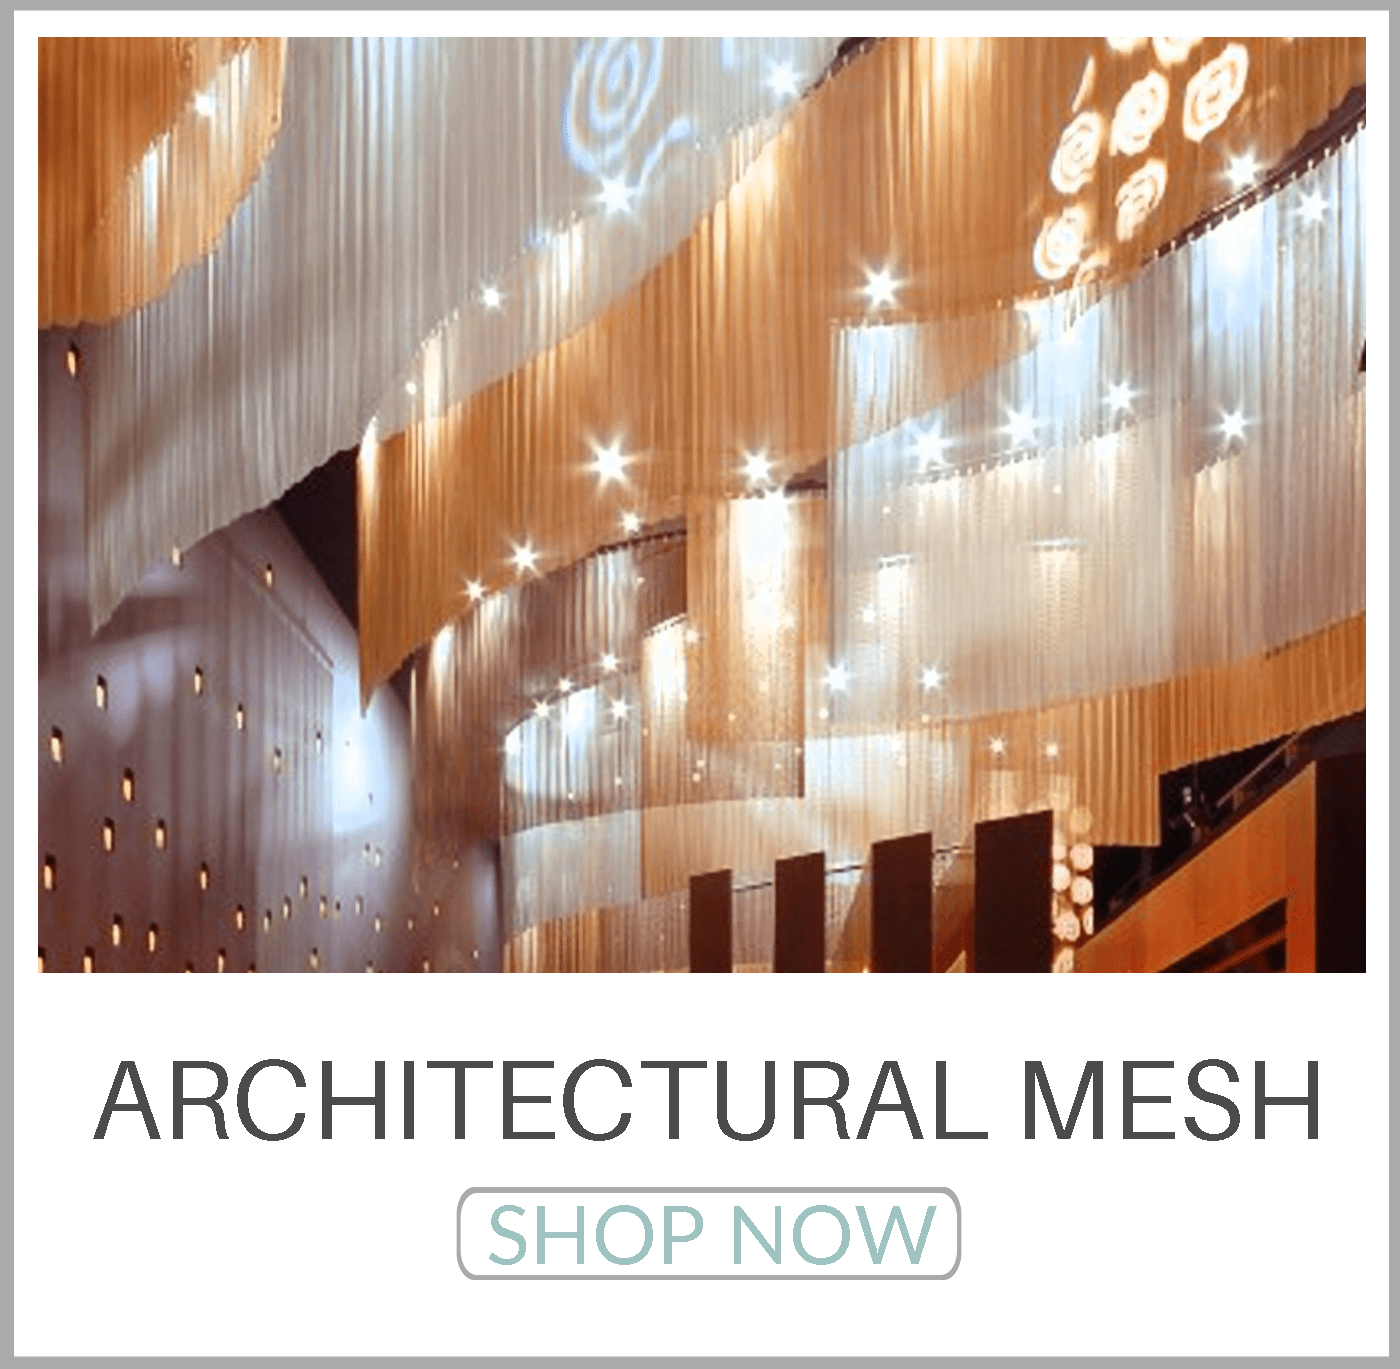 Shop All Architectural Mesh NOW